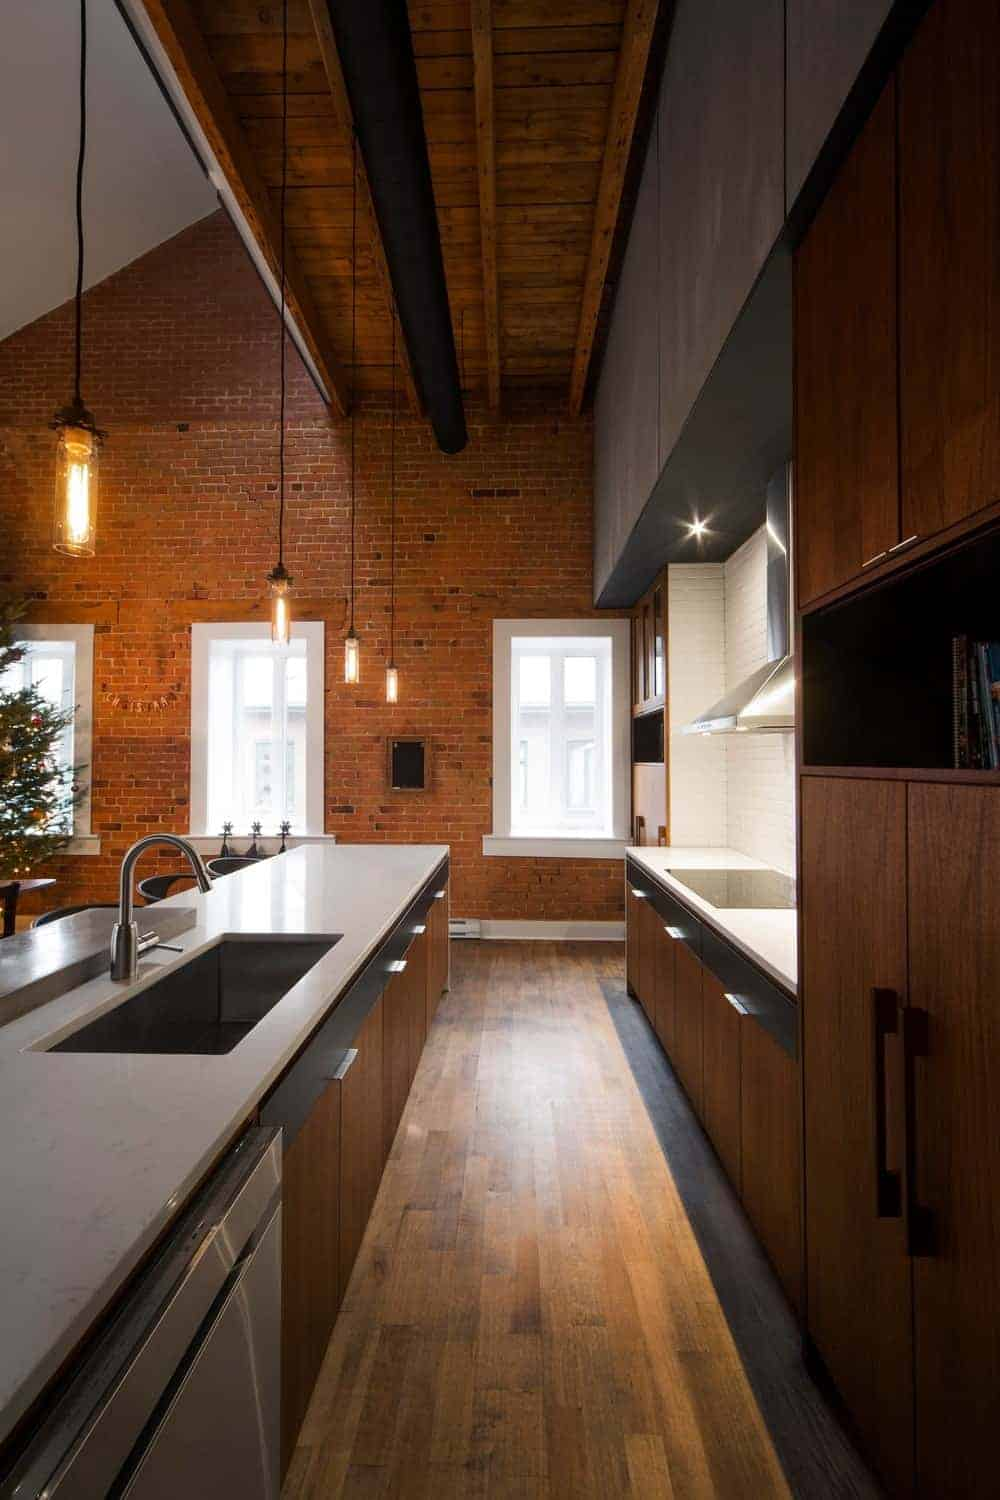 The narrow hardwood flooring of this Industrial-style kitchen matches with the brown wooden cabinetry of the flanking kitchen island and kitchen peninsula with white countertops and stainless steel appliances with a nice background of a brick wall with contrasting white windows.